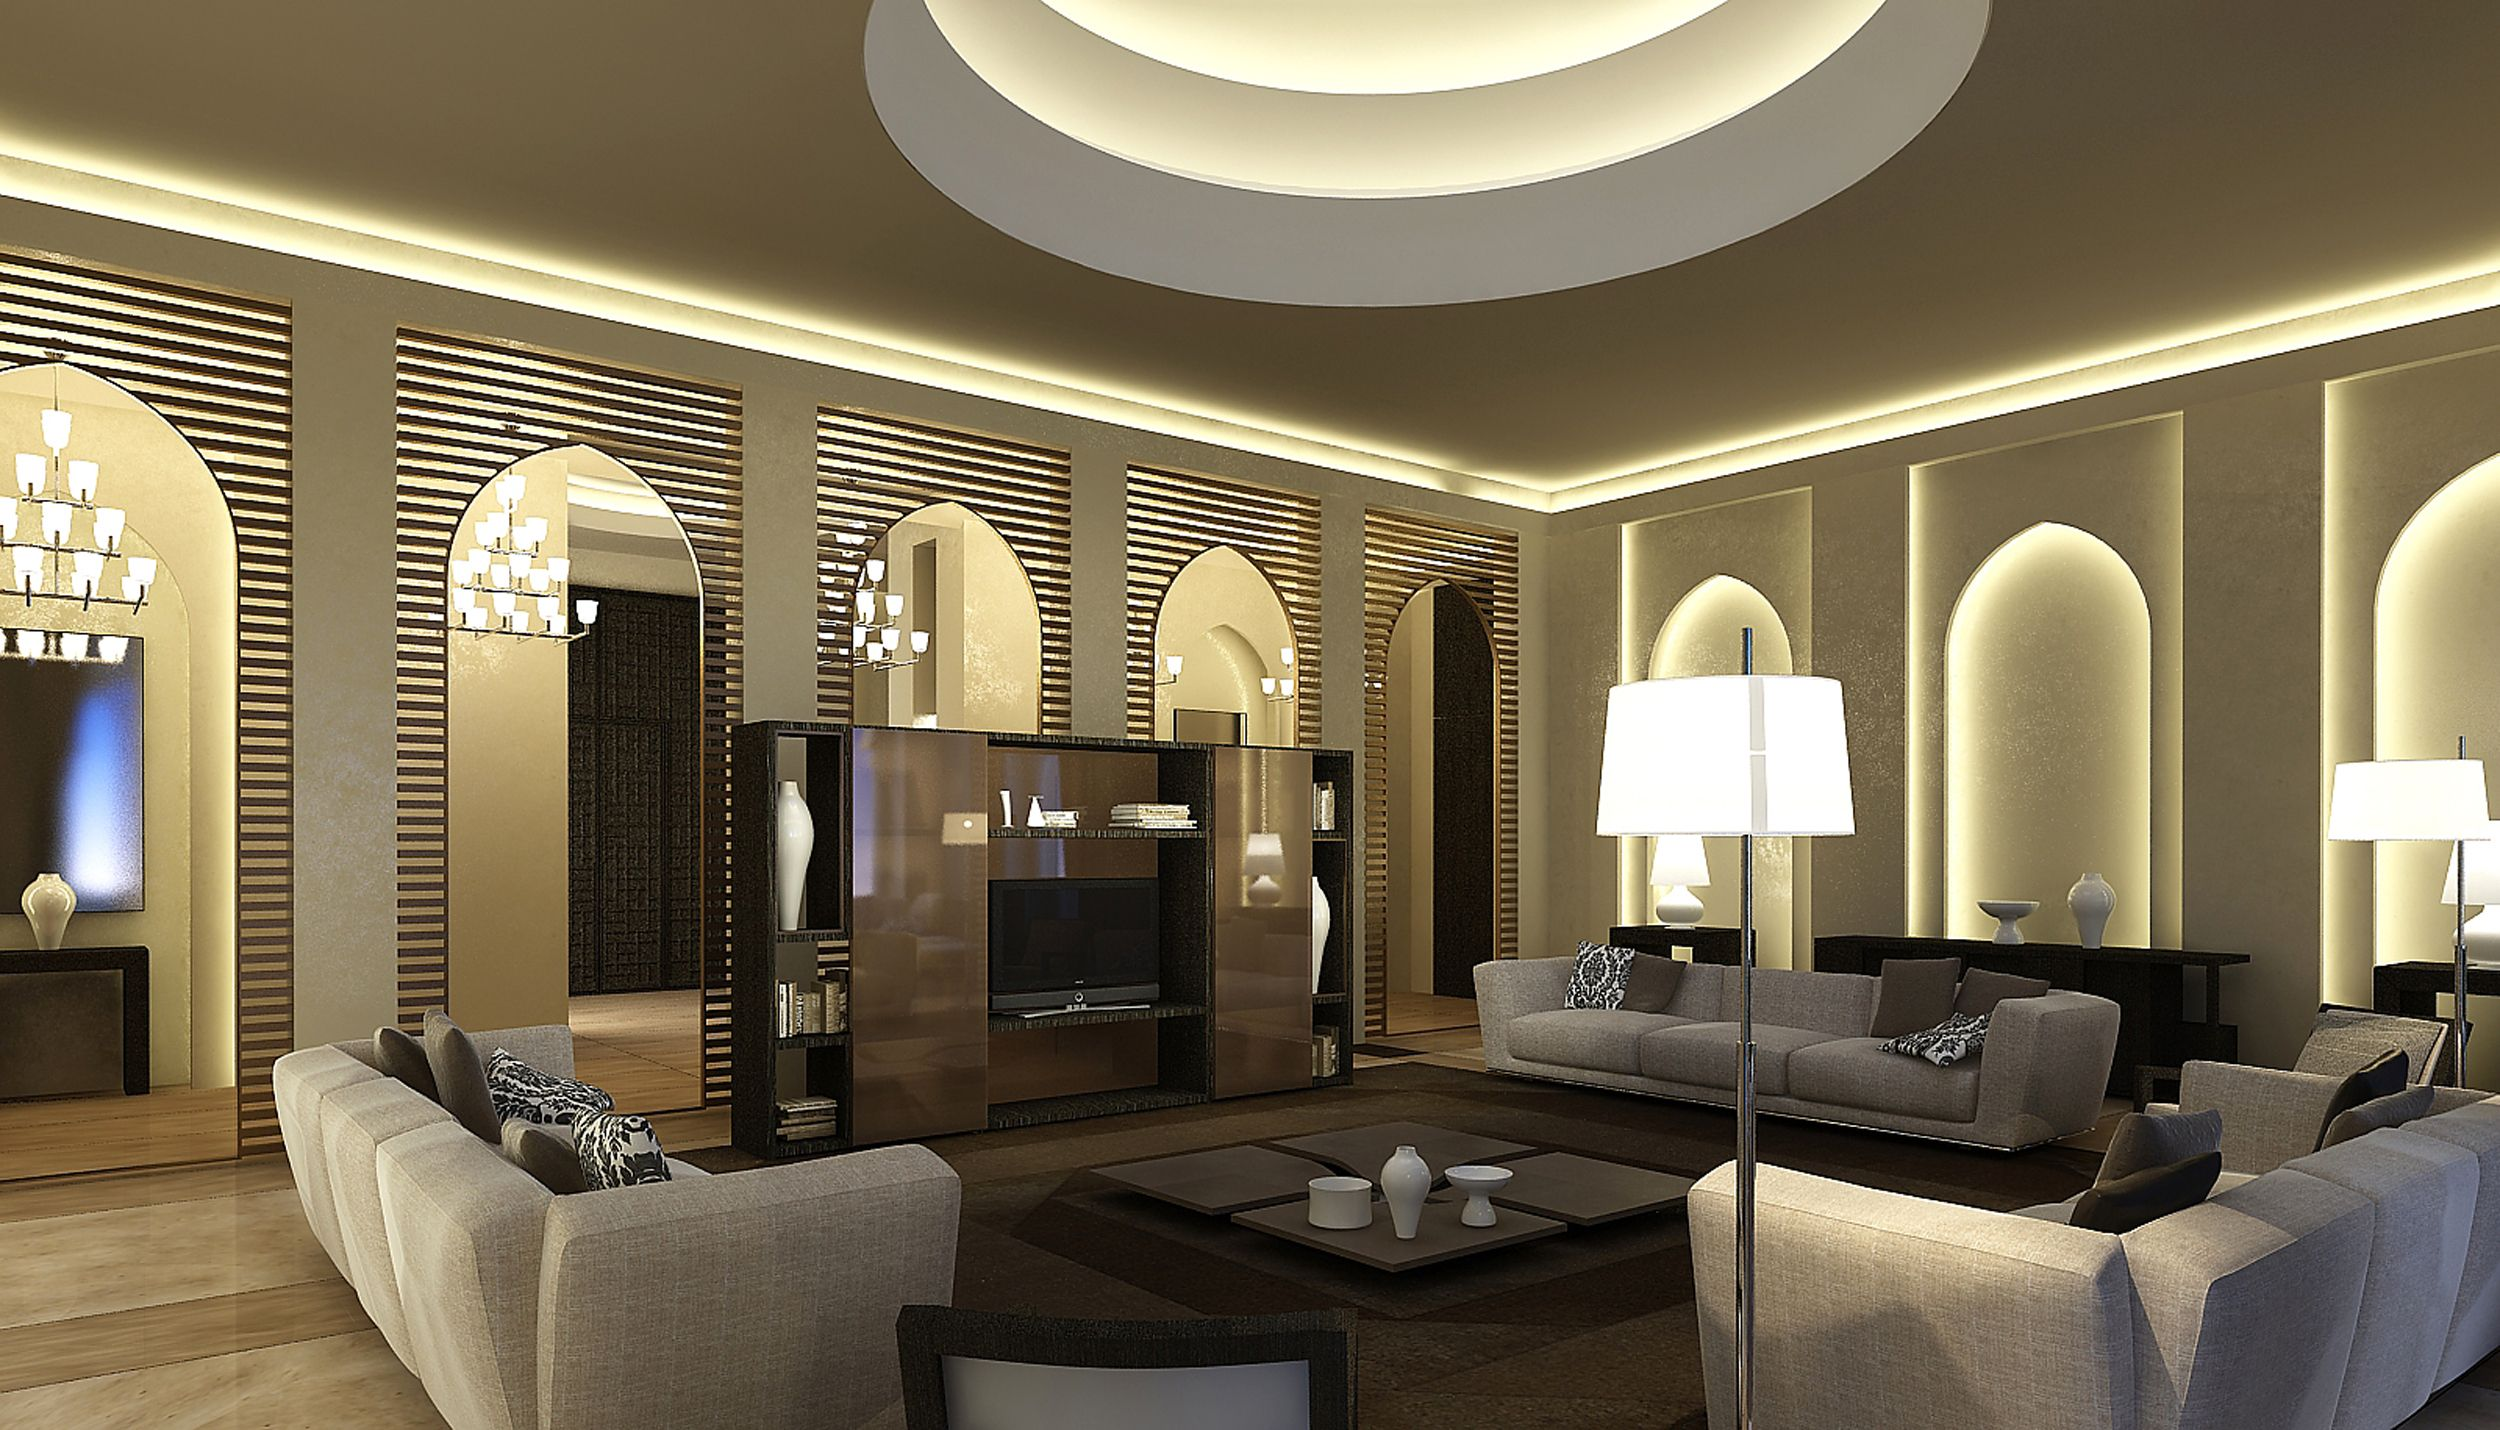 international interior design private villa abdul aziz al ghurair international interior design private villa abdul aziz al ghurair dubai